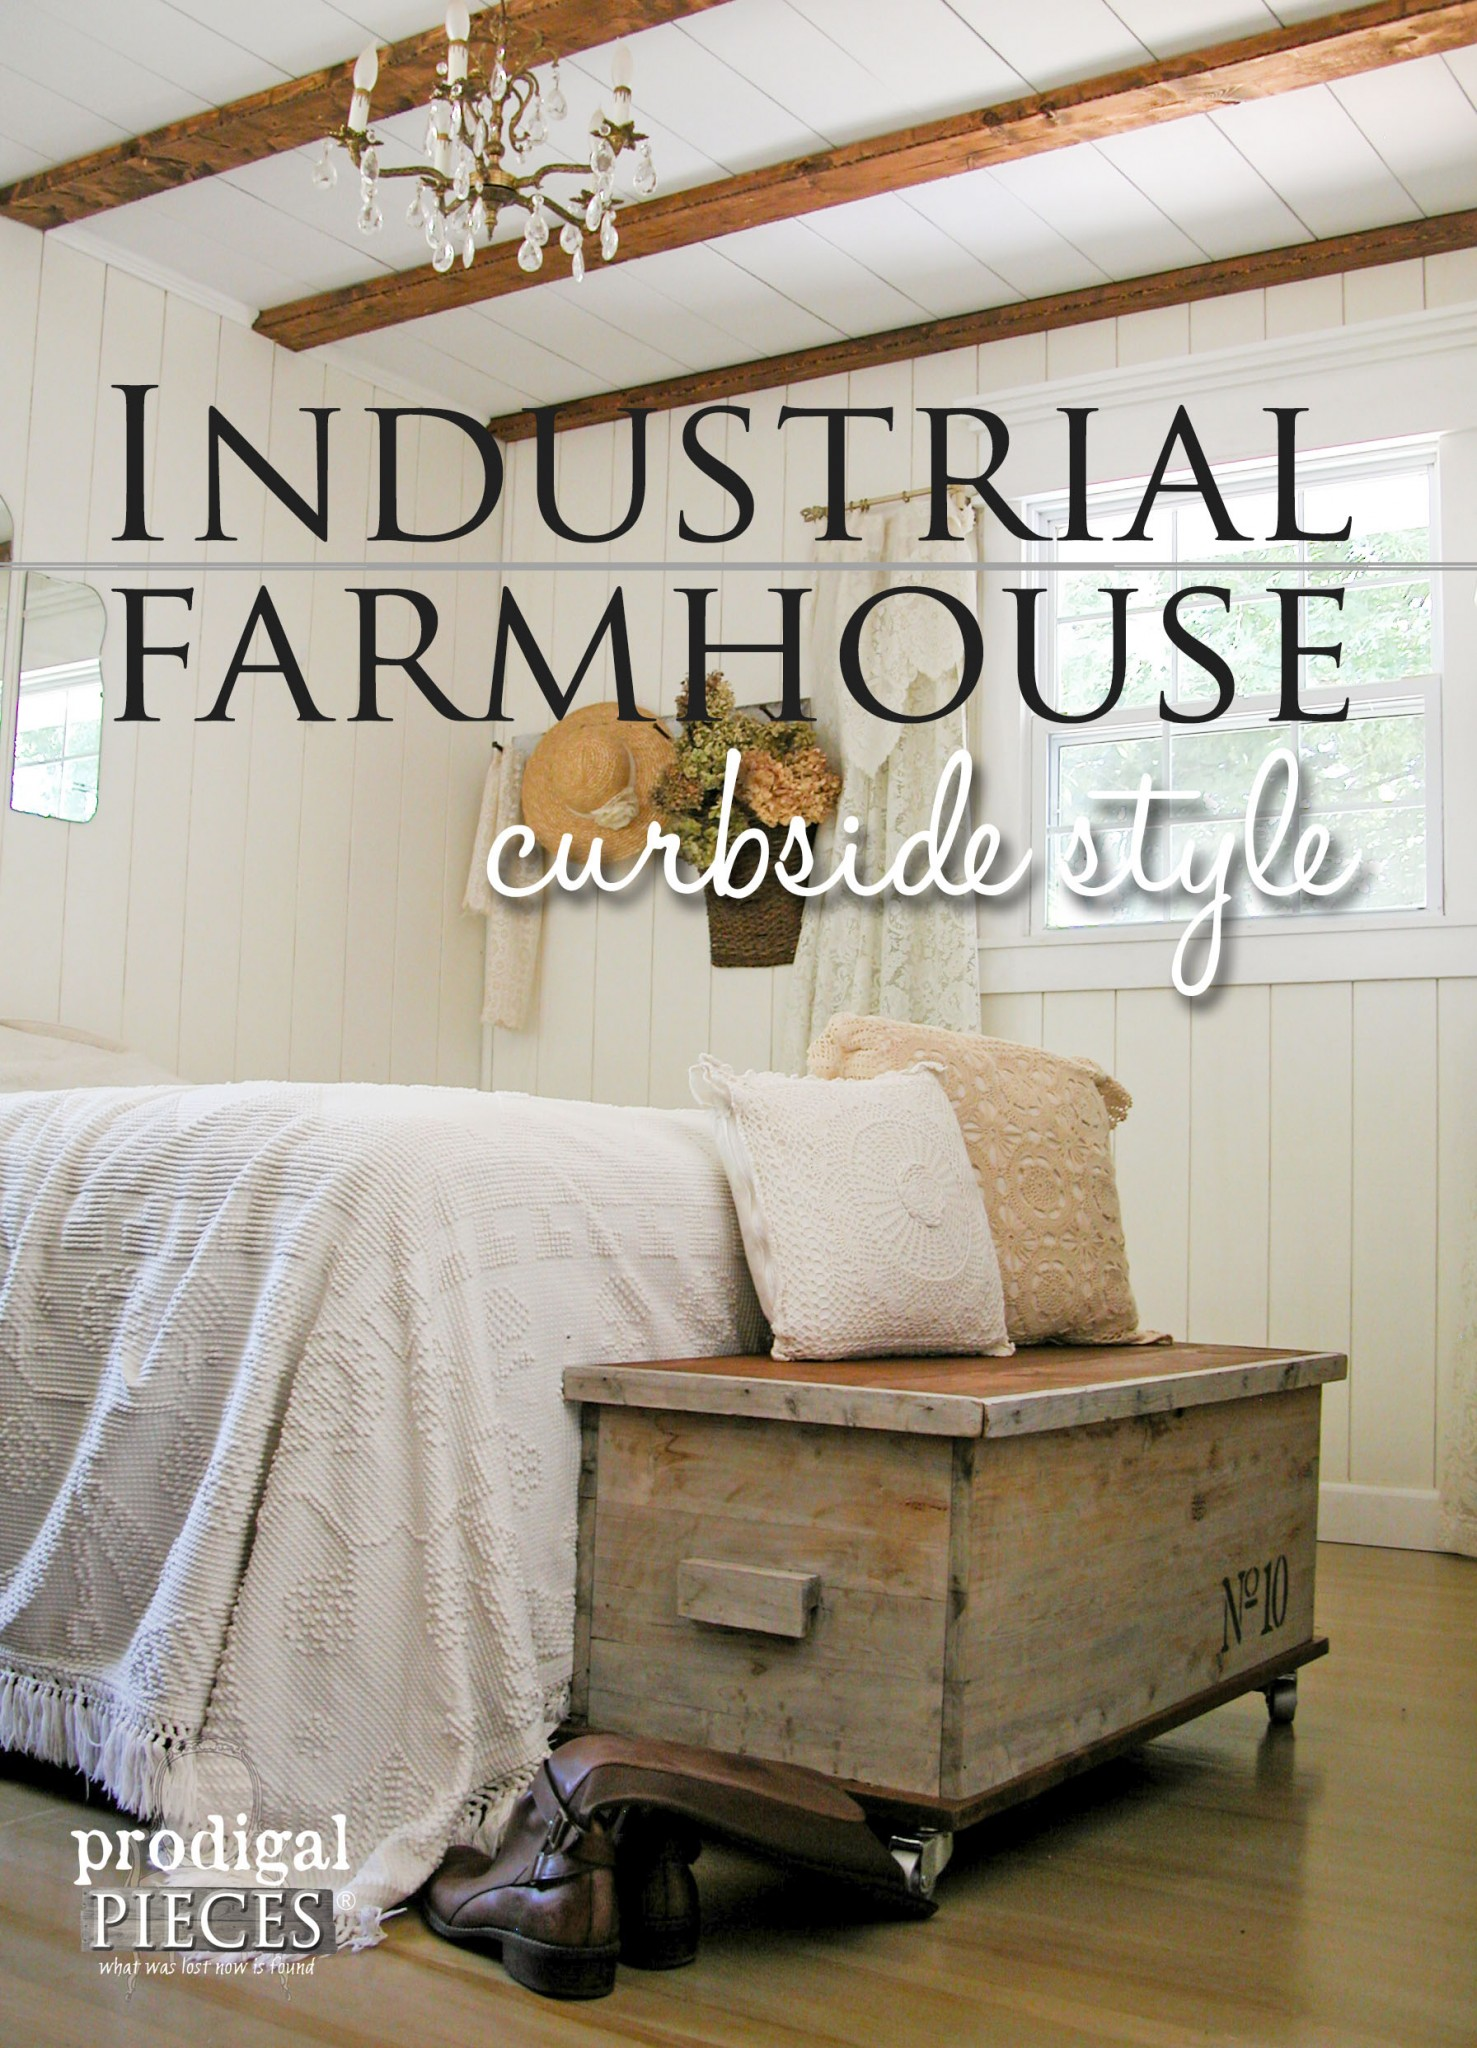 A Cedar Chest Found in the Trash Becomes Industrial Style Decor in this Farmhouse Bedroom by Prodigal Pieces | prodigalpieces.com